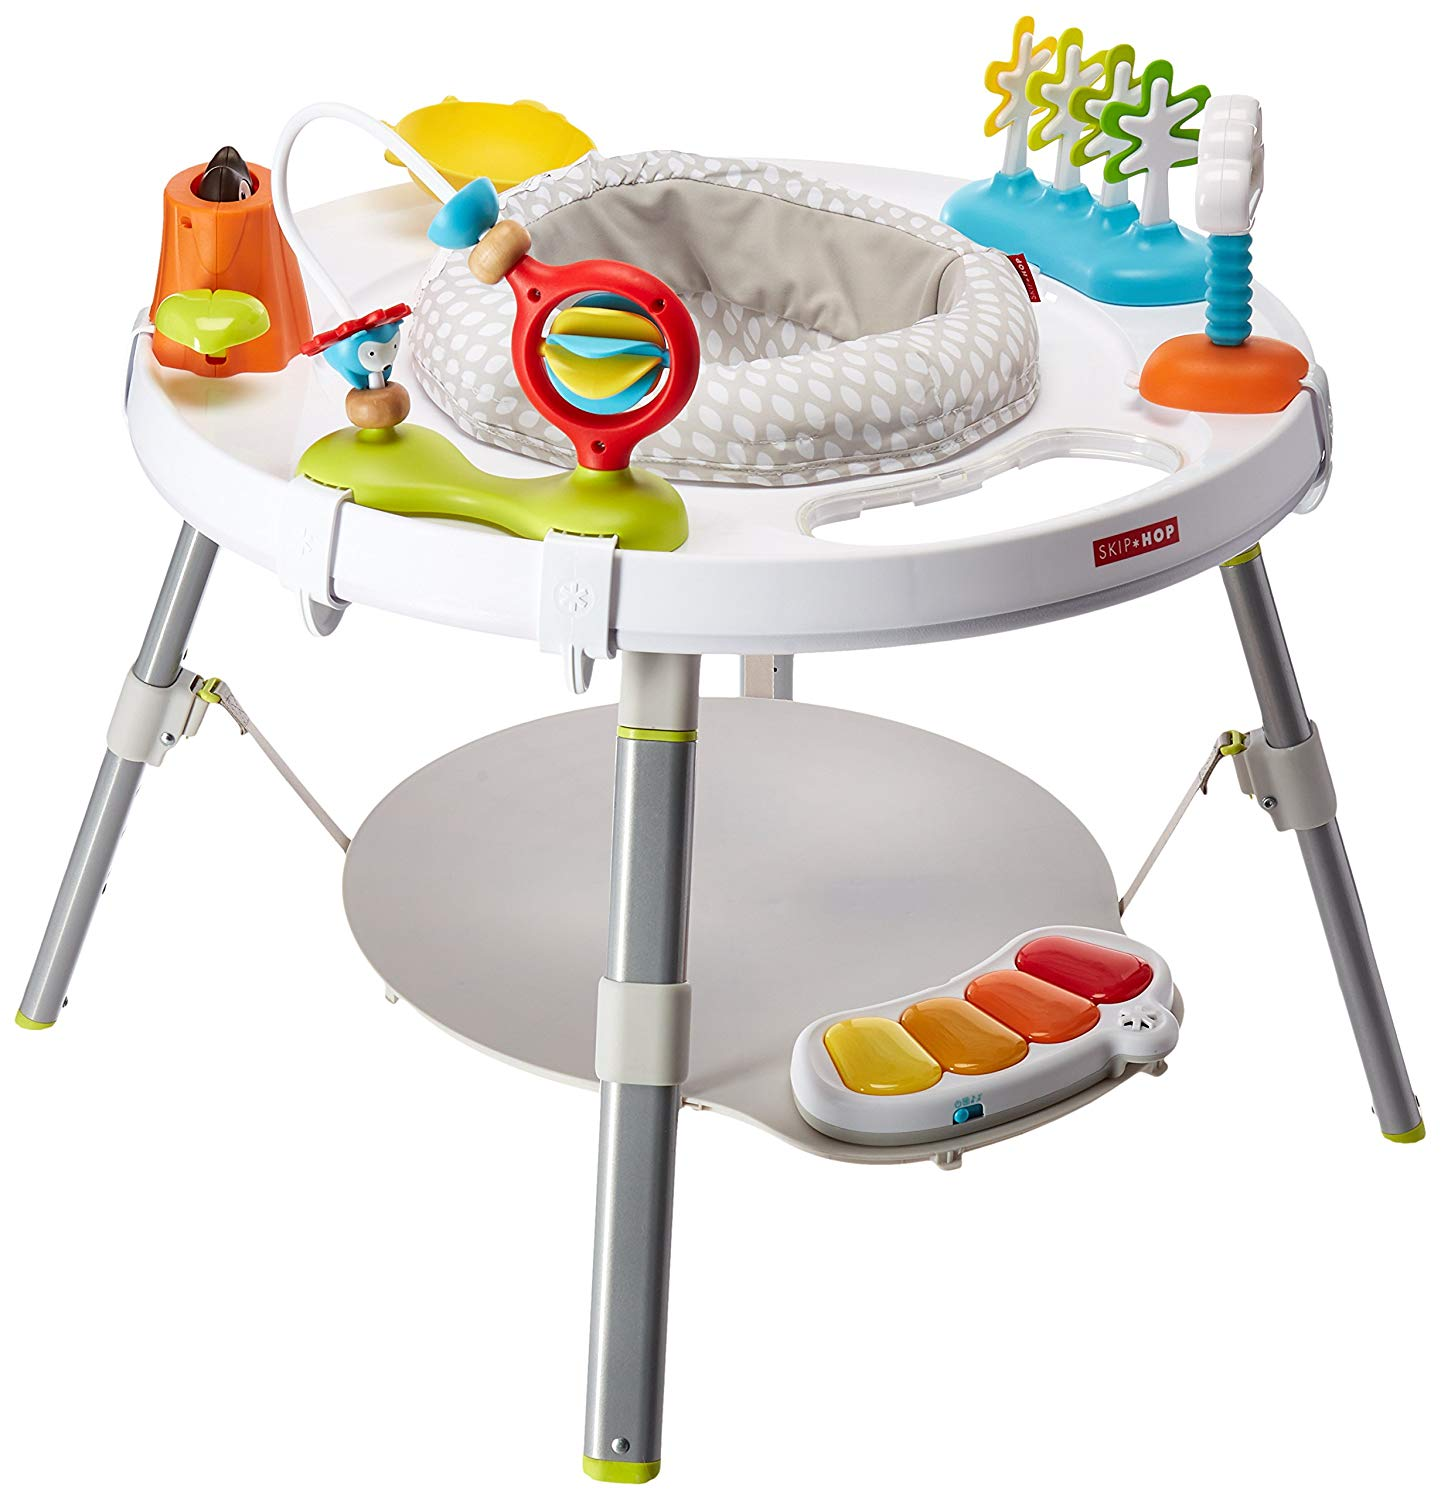 skip hop activity center, best baby toys, baby registry